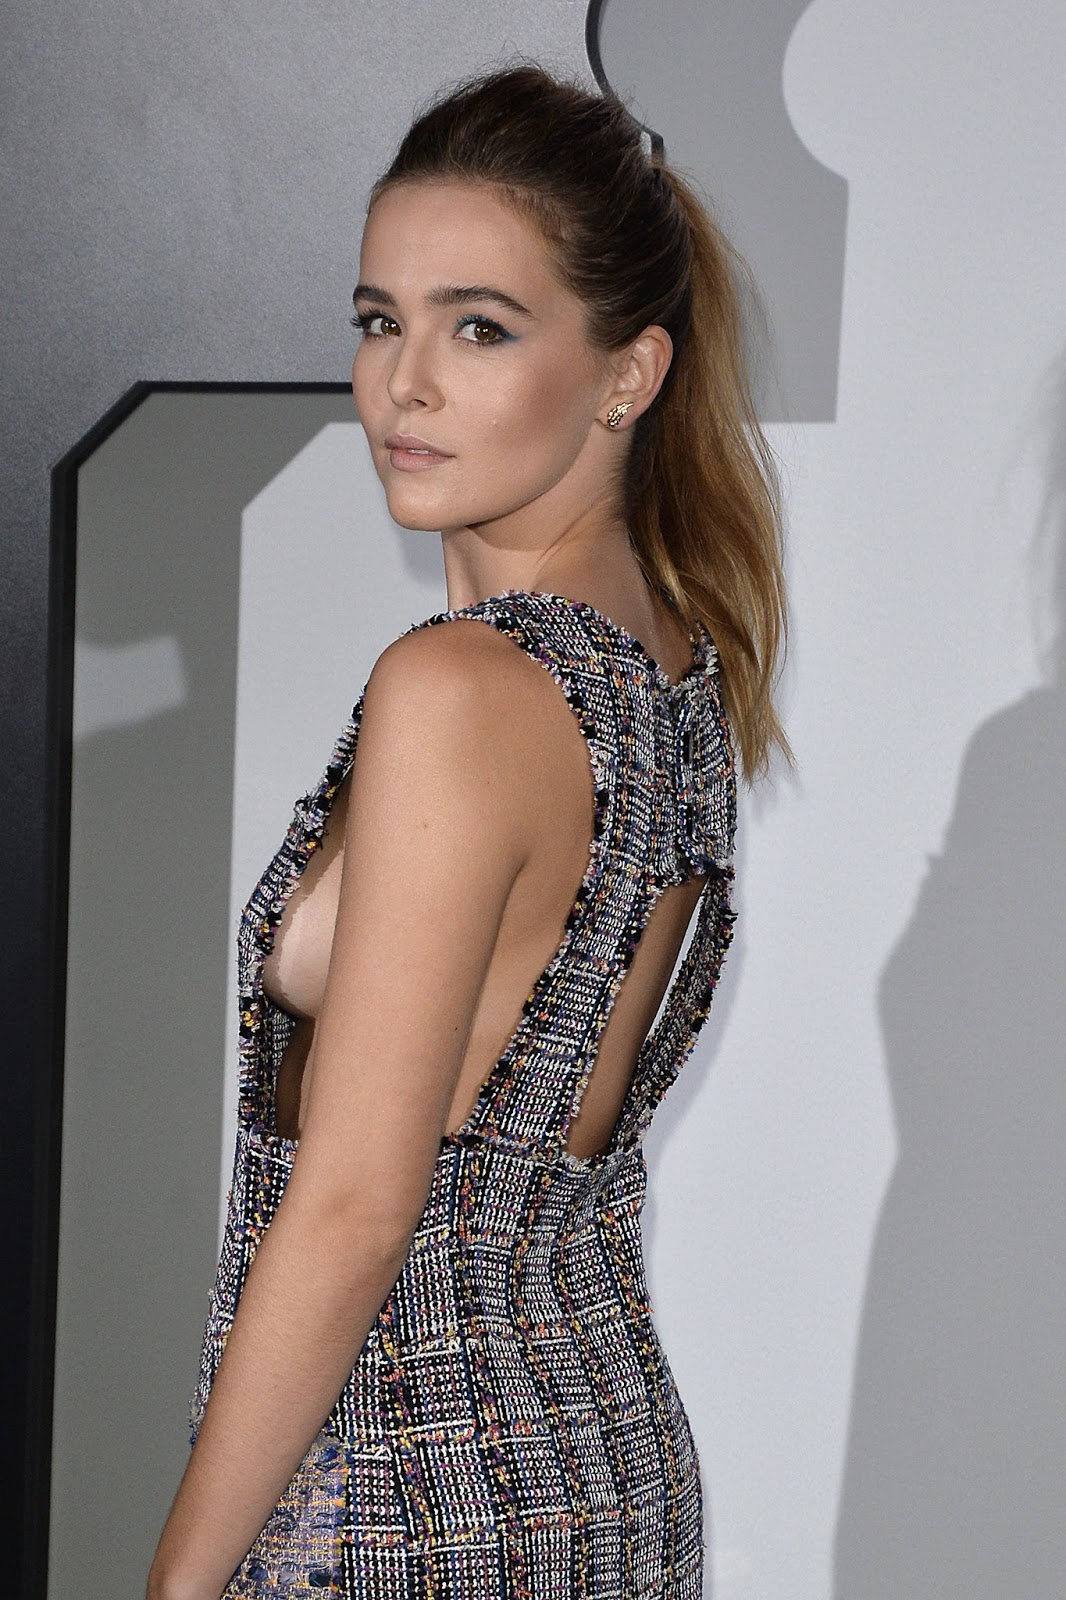 Zoey Deutch Sideboobs